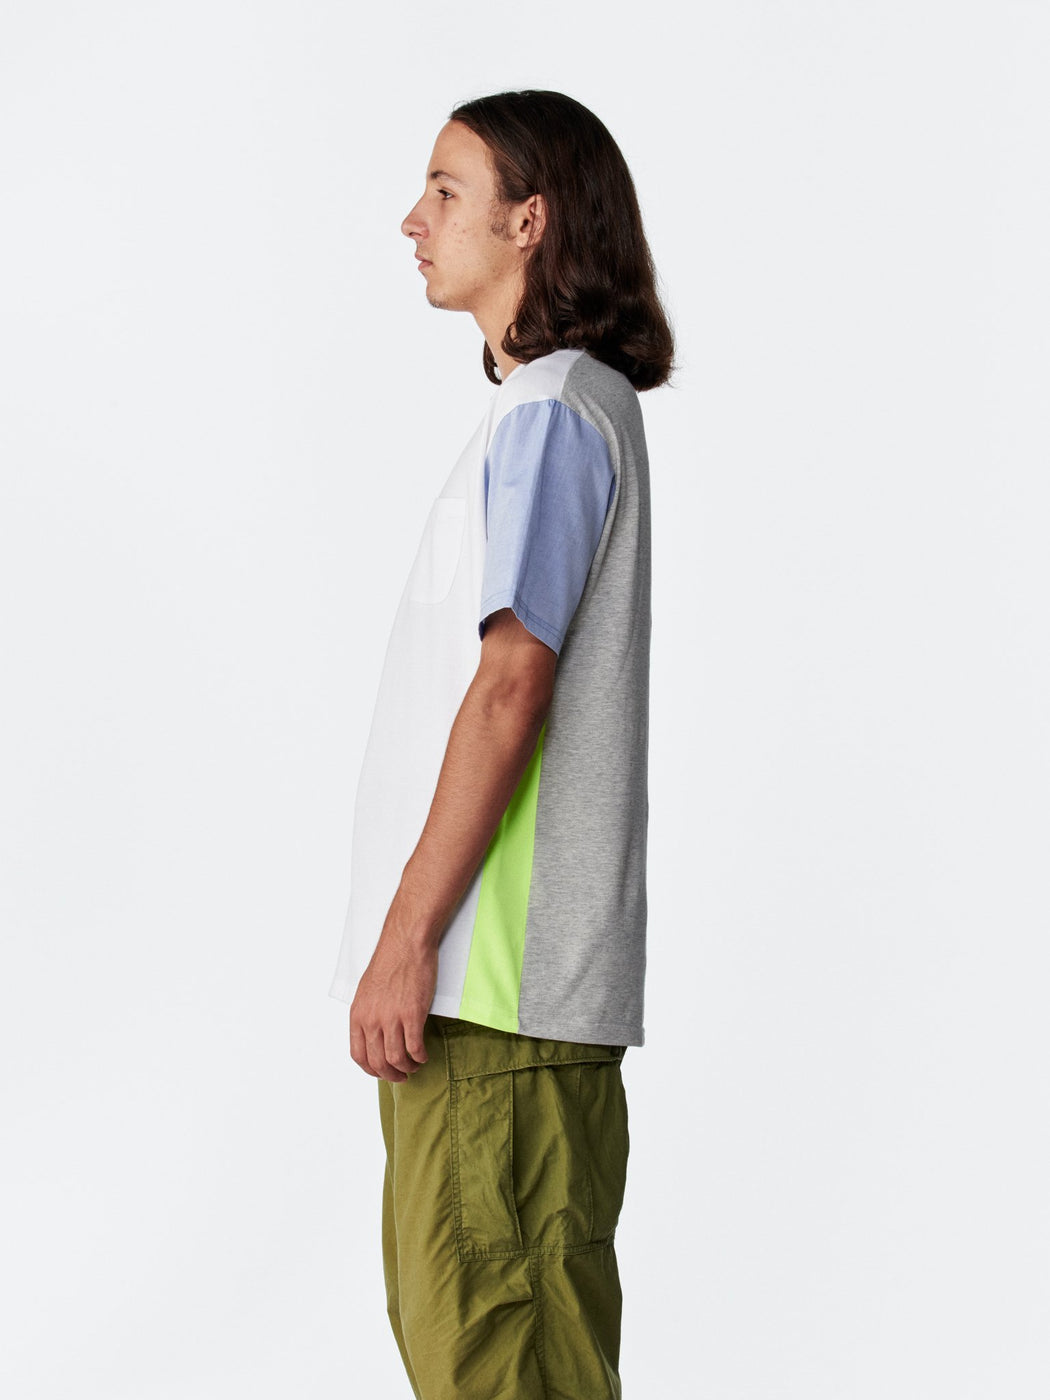 ALOYE Shirt Fabrics Short Sleeve T-shirt White-Yellow